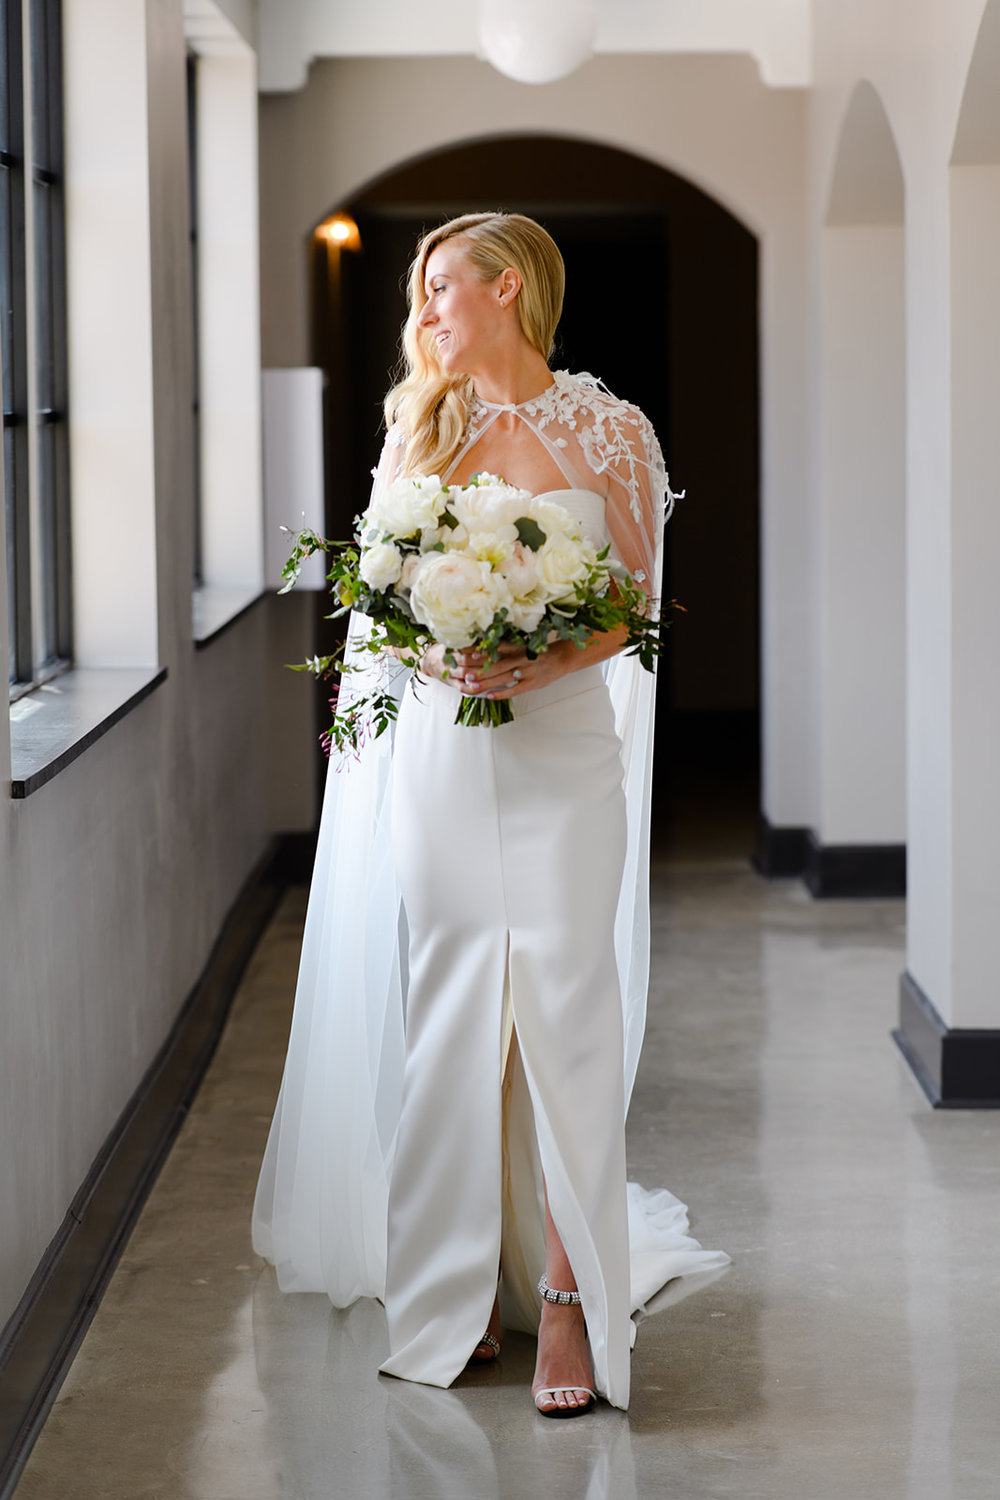 Terese was a vision in this striking sleek gown and embellished cape. She wore her hair in a deep side part and looked super chic.